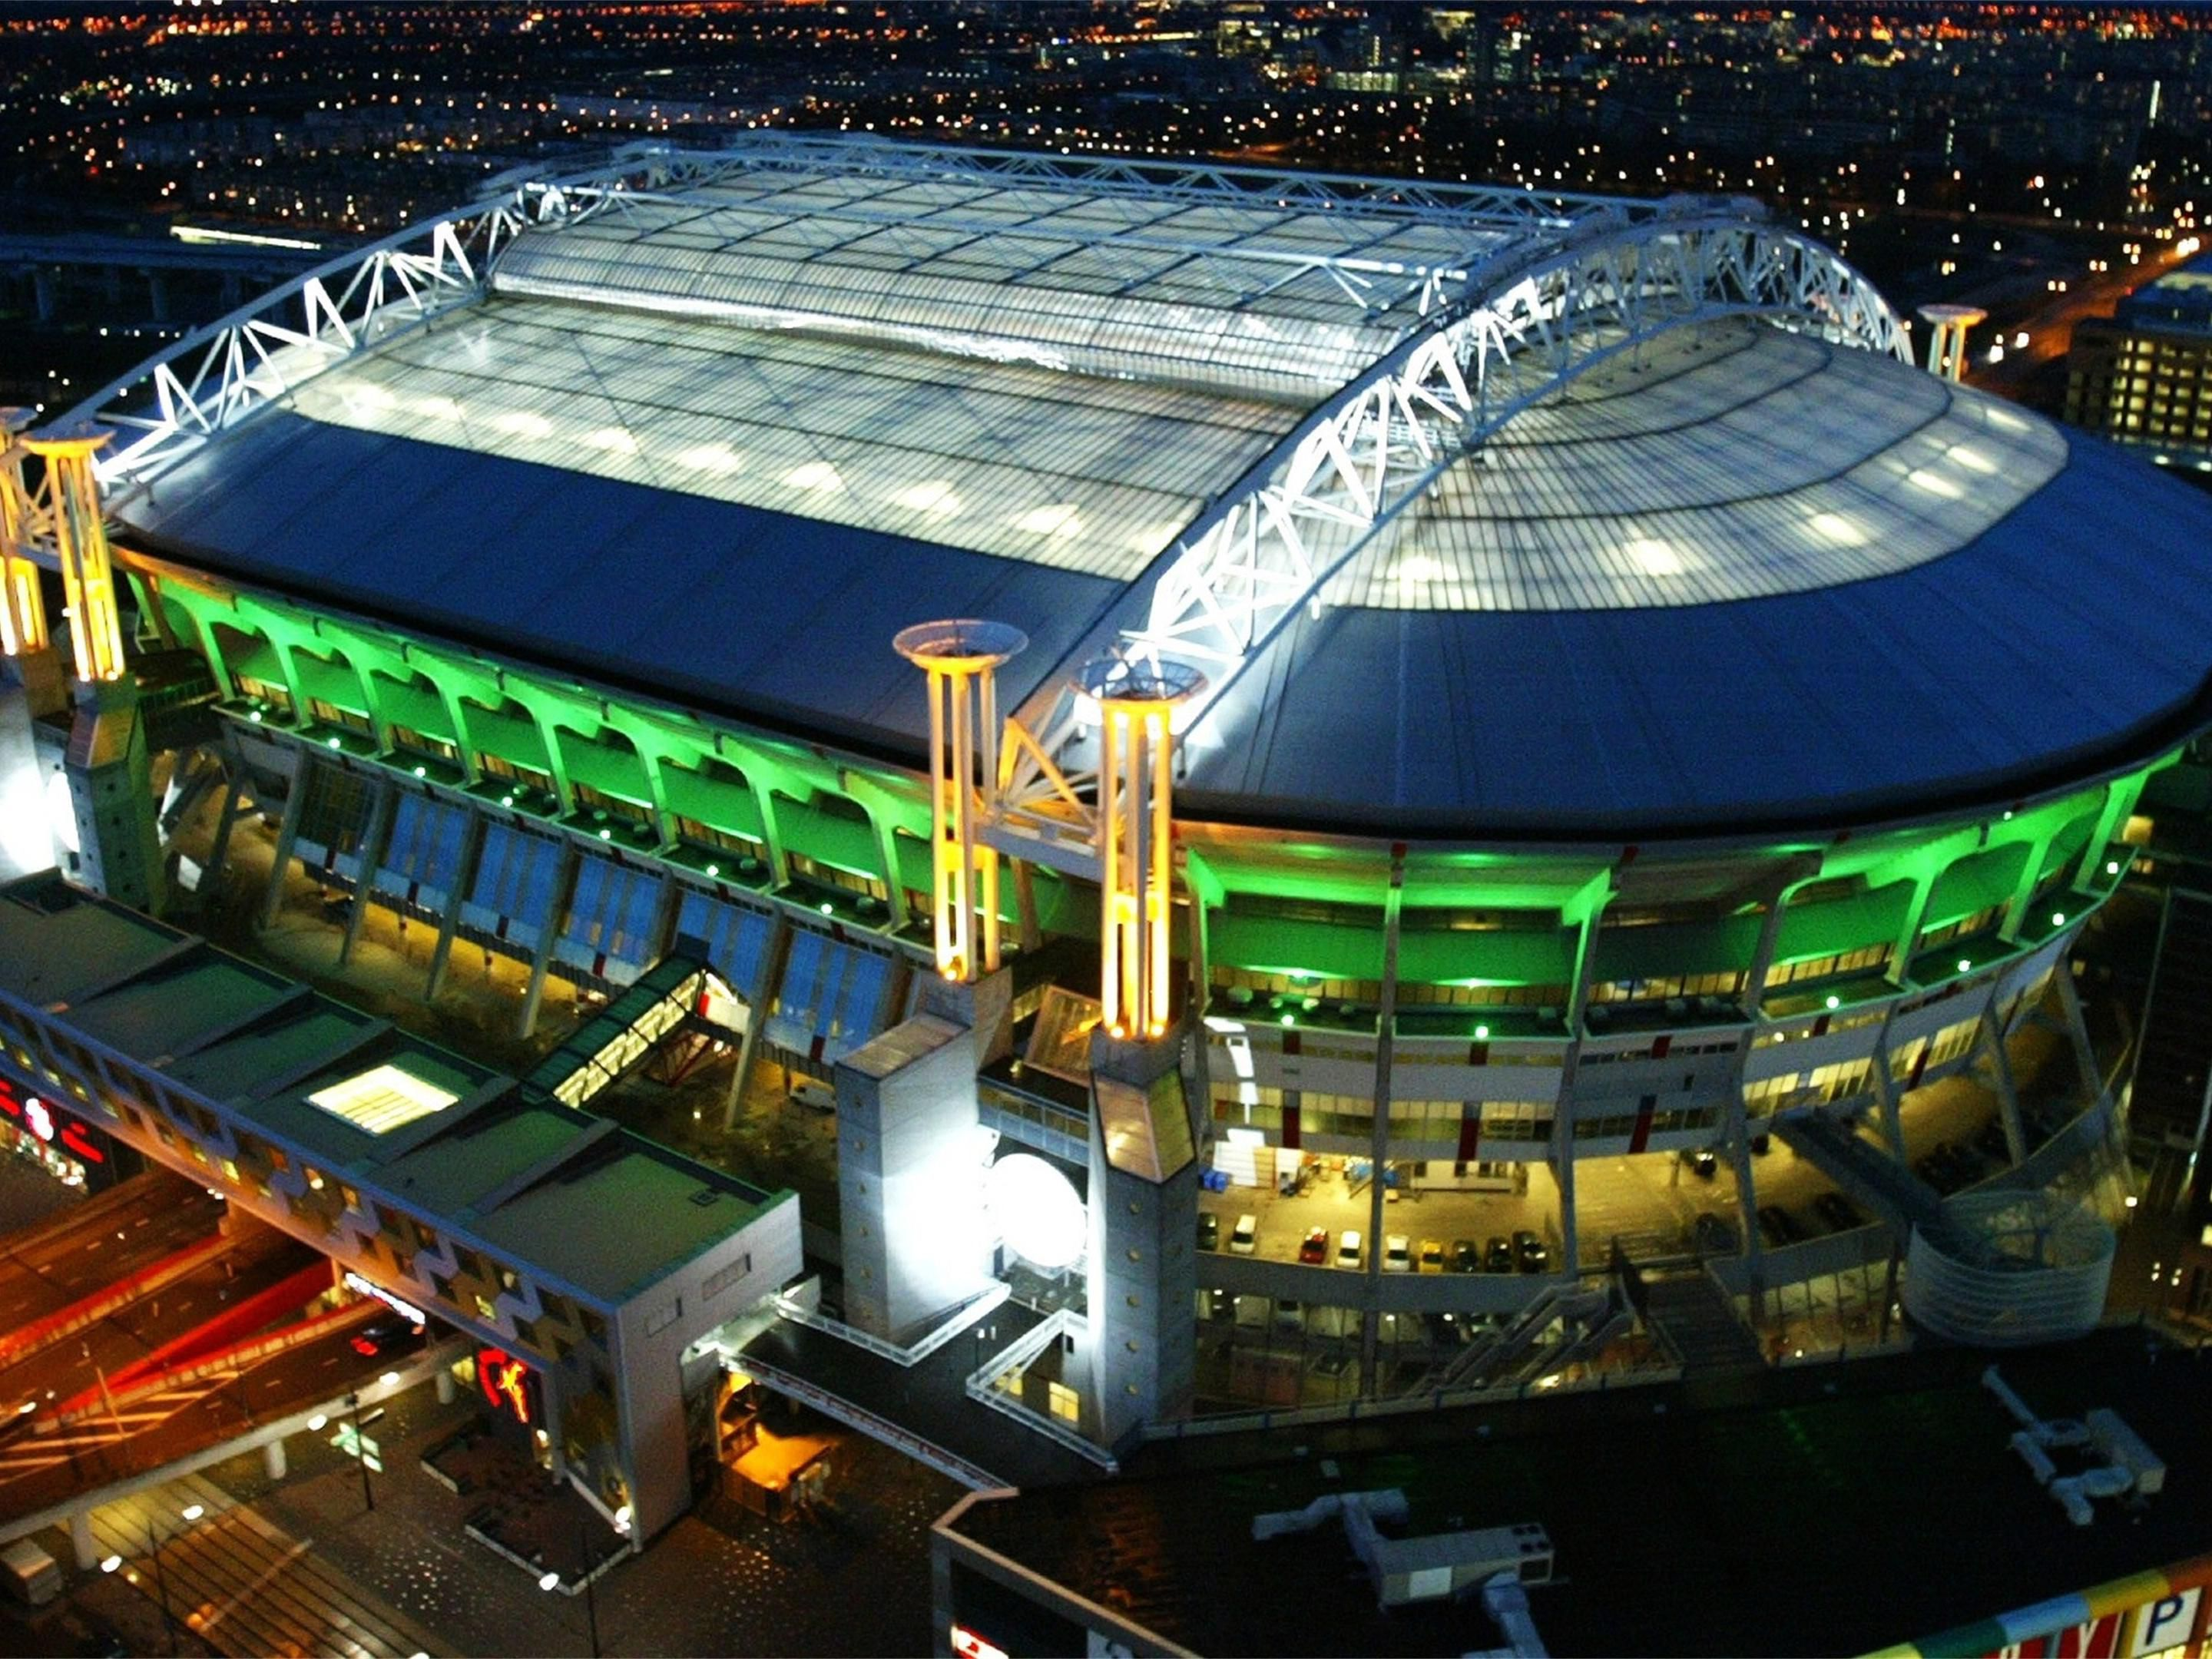 Amsterdam ArenA - Home of AFC Ajax and Dutch National Team.